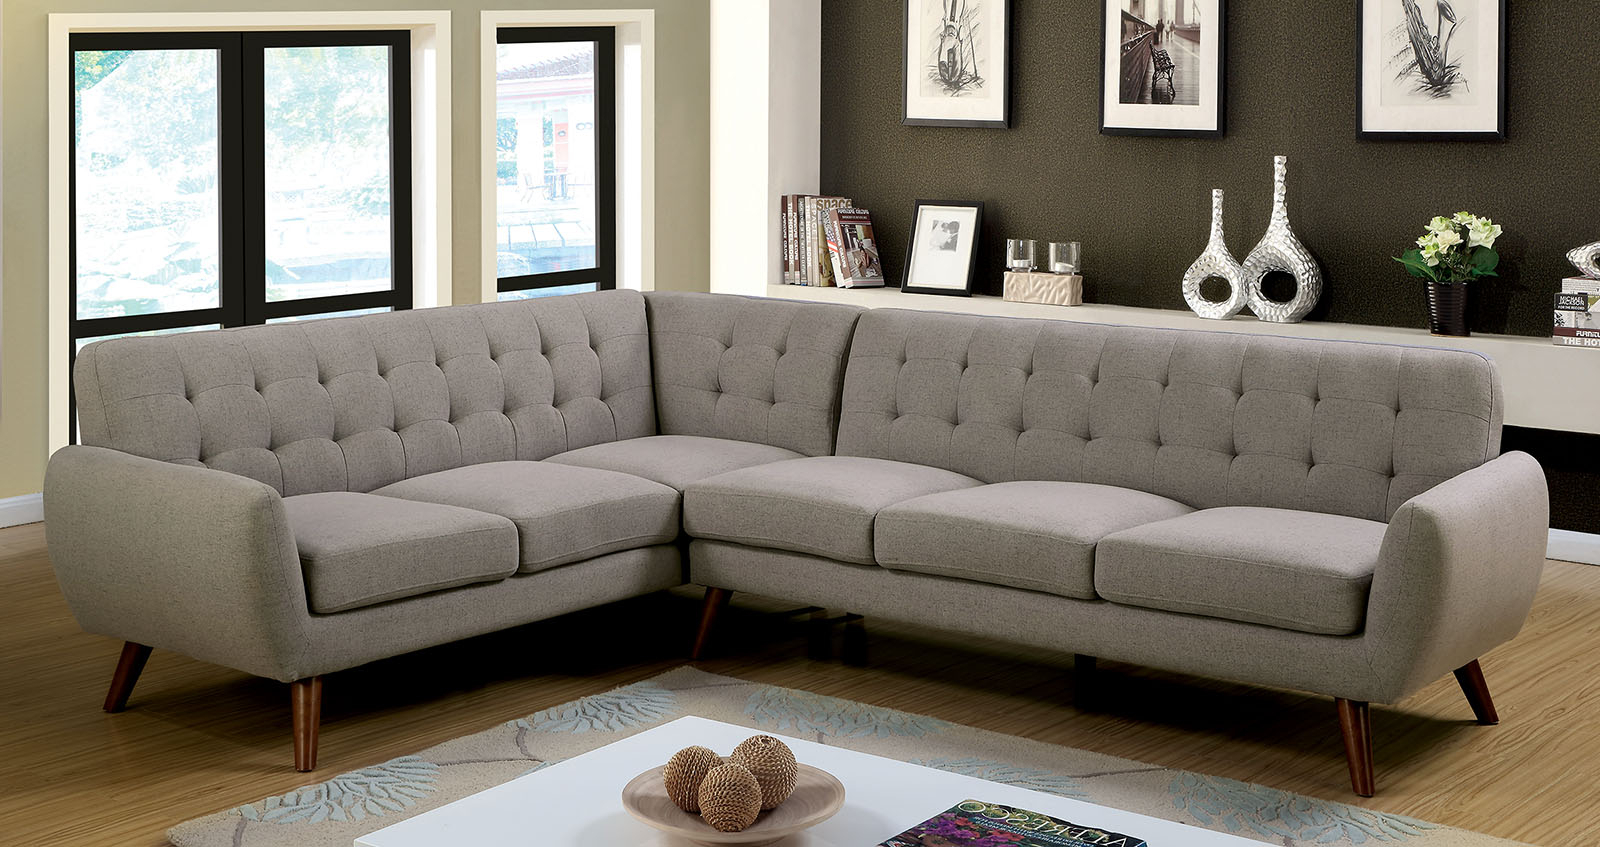 2017 Furniture Of America 6144 Gray Mid Century Modern Pertaining To Mireille Modern And Contemporary Fabric Upholstered Sectional Sofas (View 12 of 25)